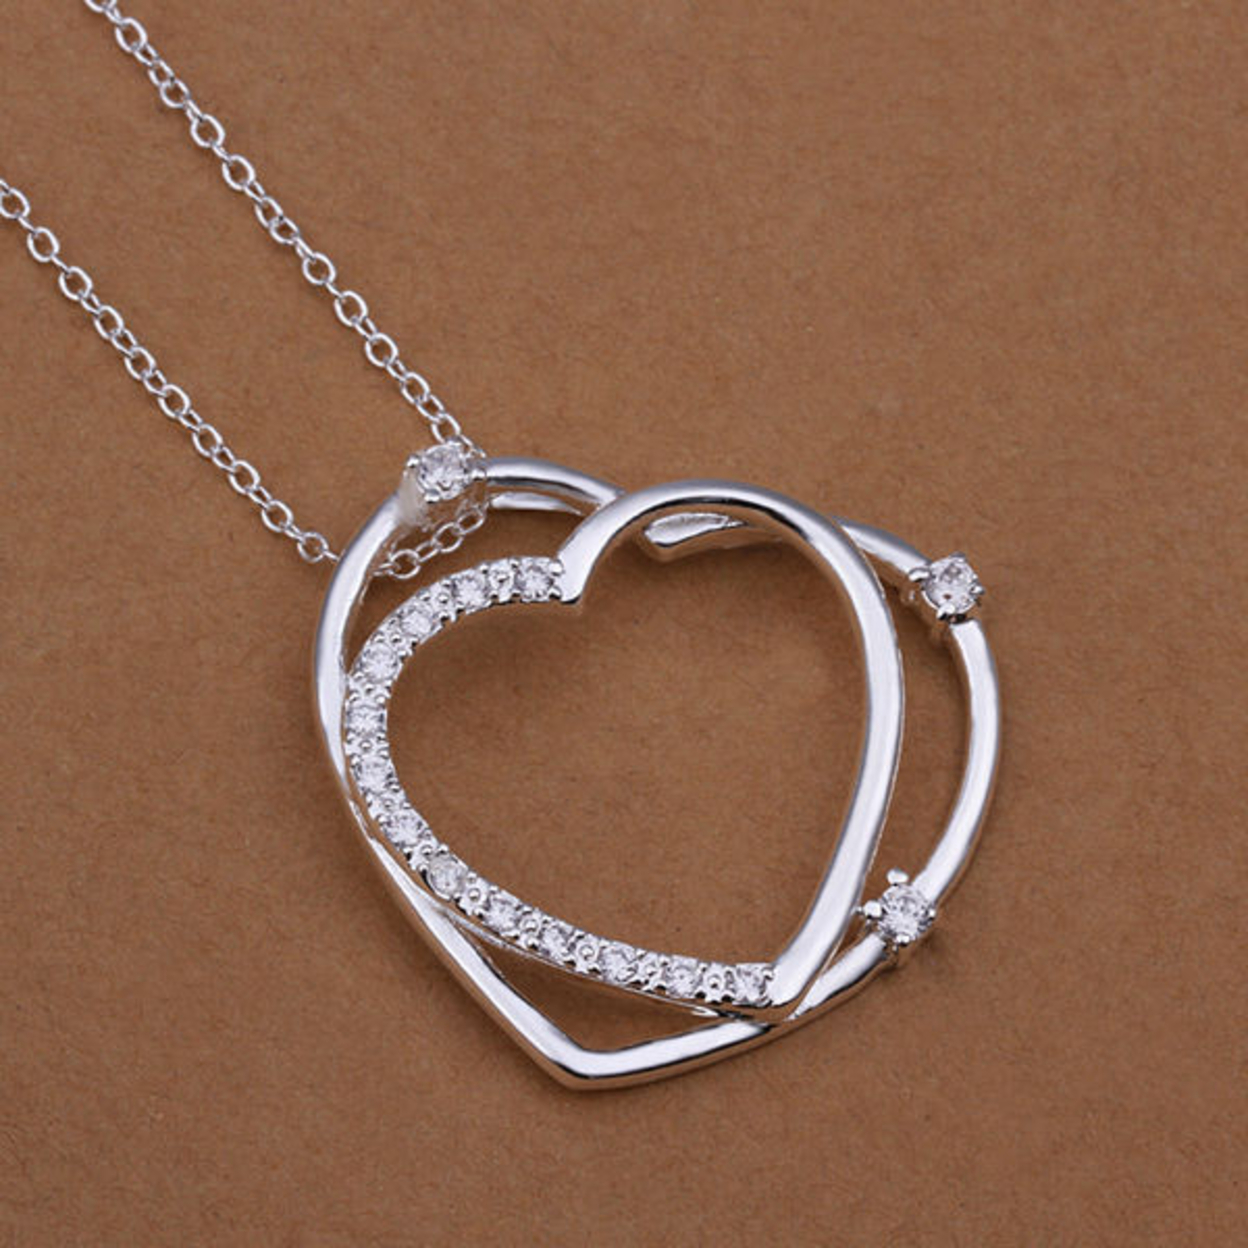 Aria Heart Necklace 925 Sterling Silver Plated